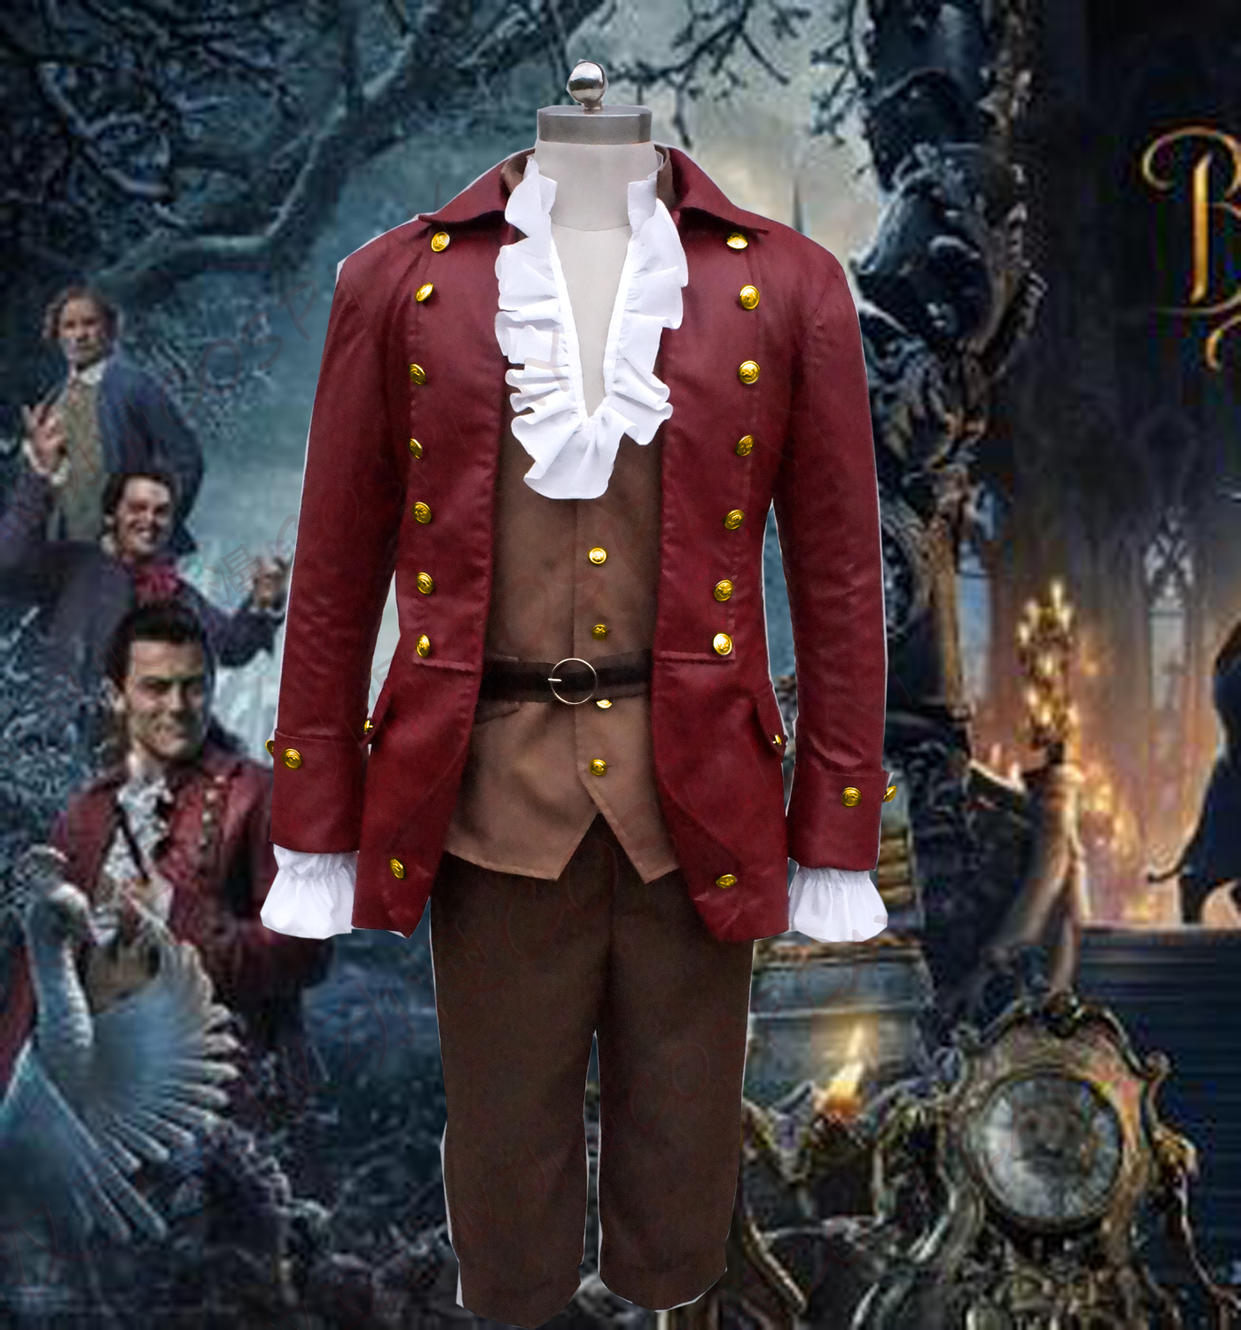 2017 Movie Beauty and The Beast Handsome Gaston Costume Men Cosplay Leather Suit Luke Evans outfits  any size/Custom-made